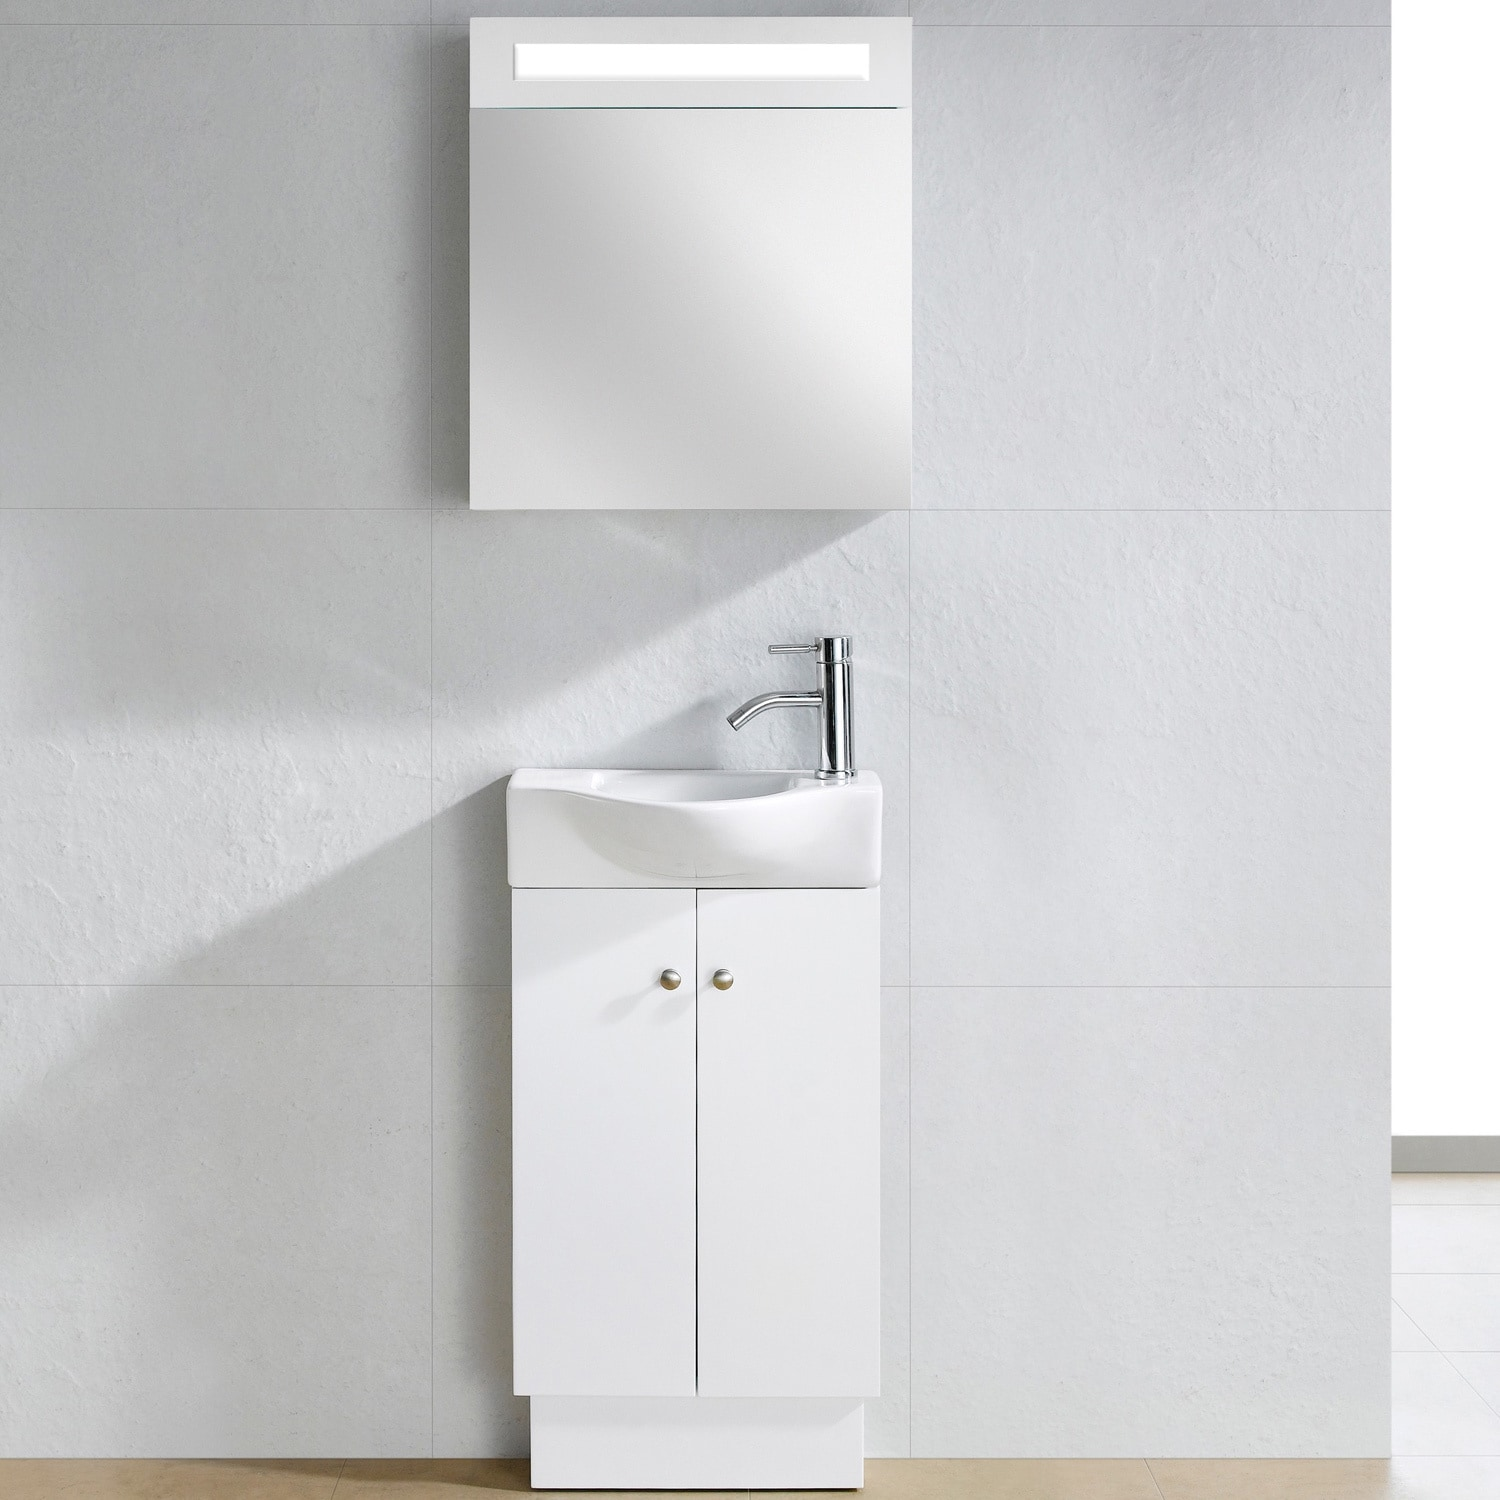 Somette Glenwood White Wood 17 Inch Single Bathroom Vanity Free Shipping Today 5989866